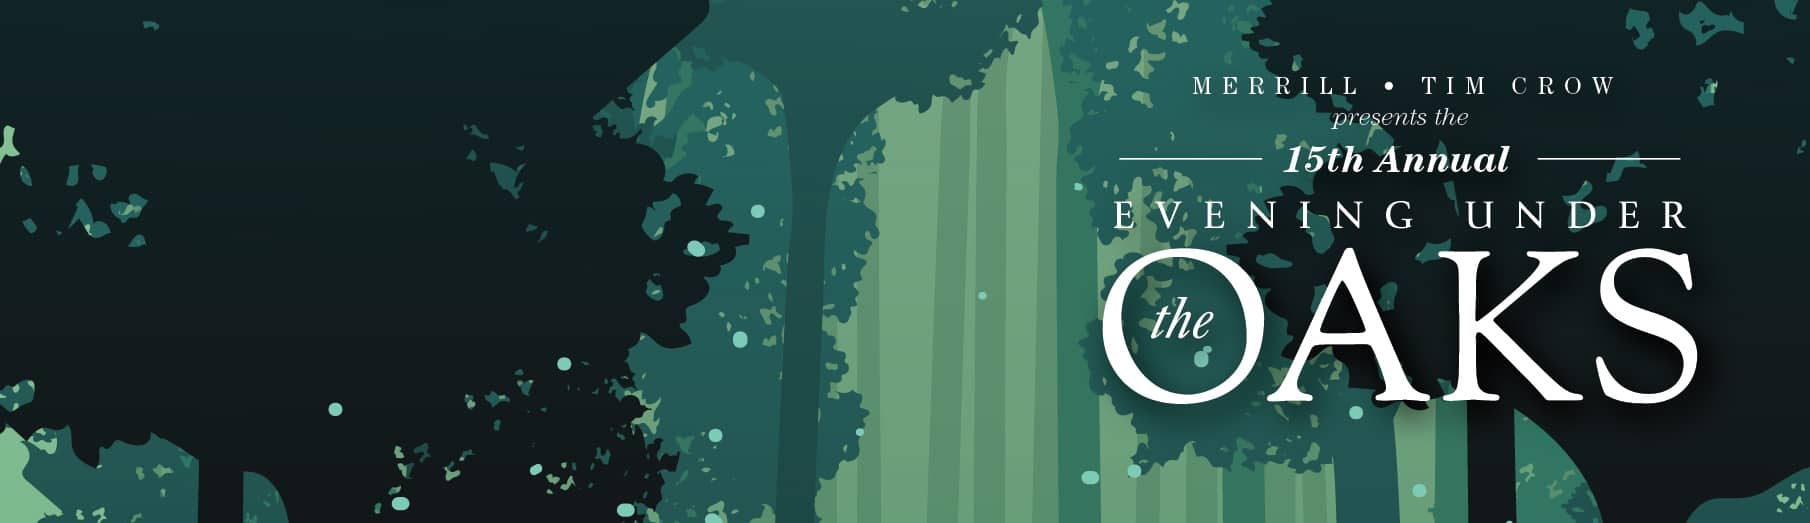 15th Annual Evening Under the Oaks